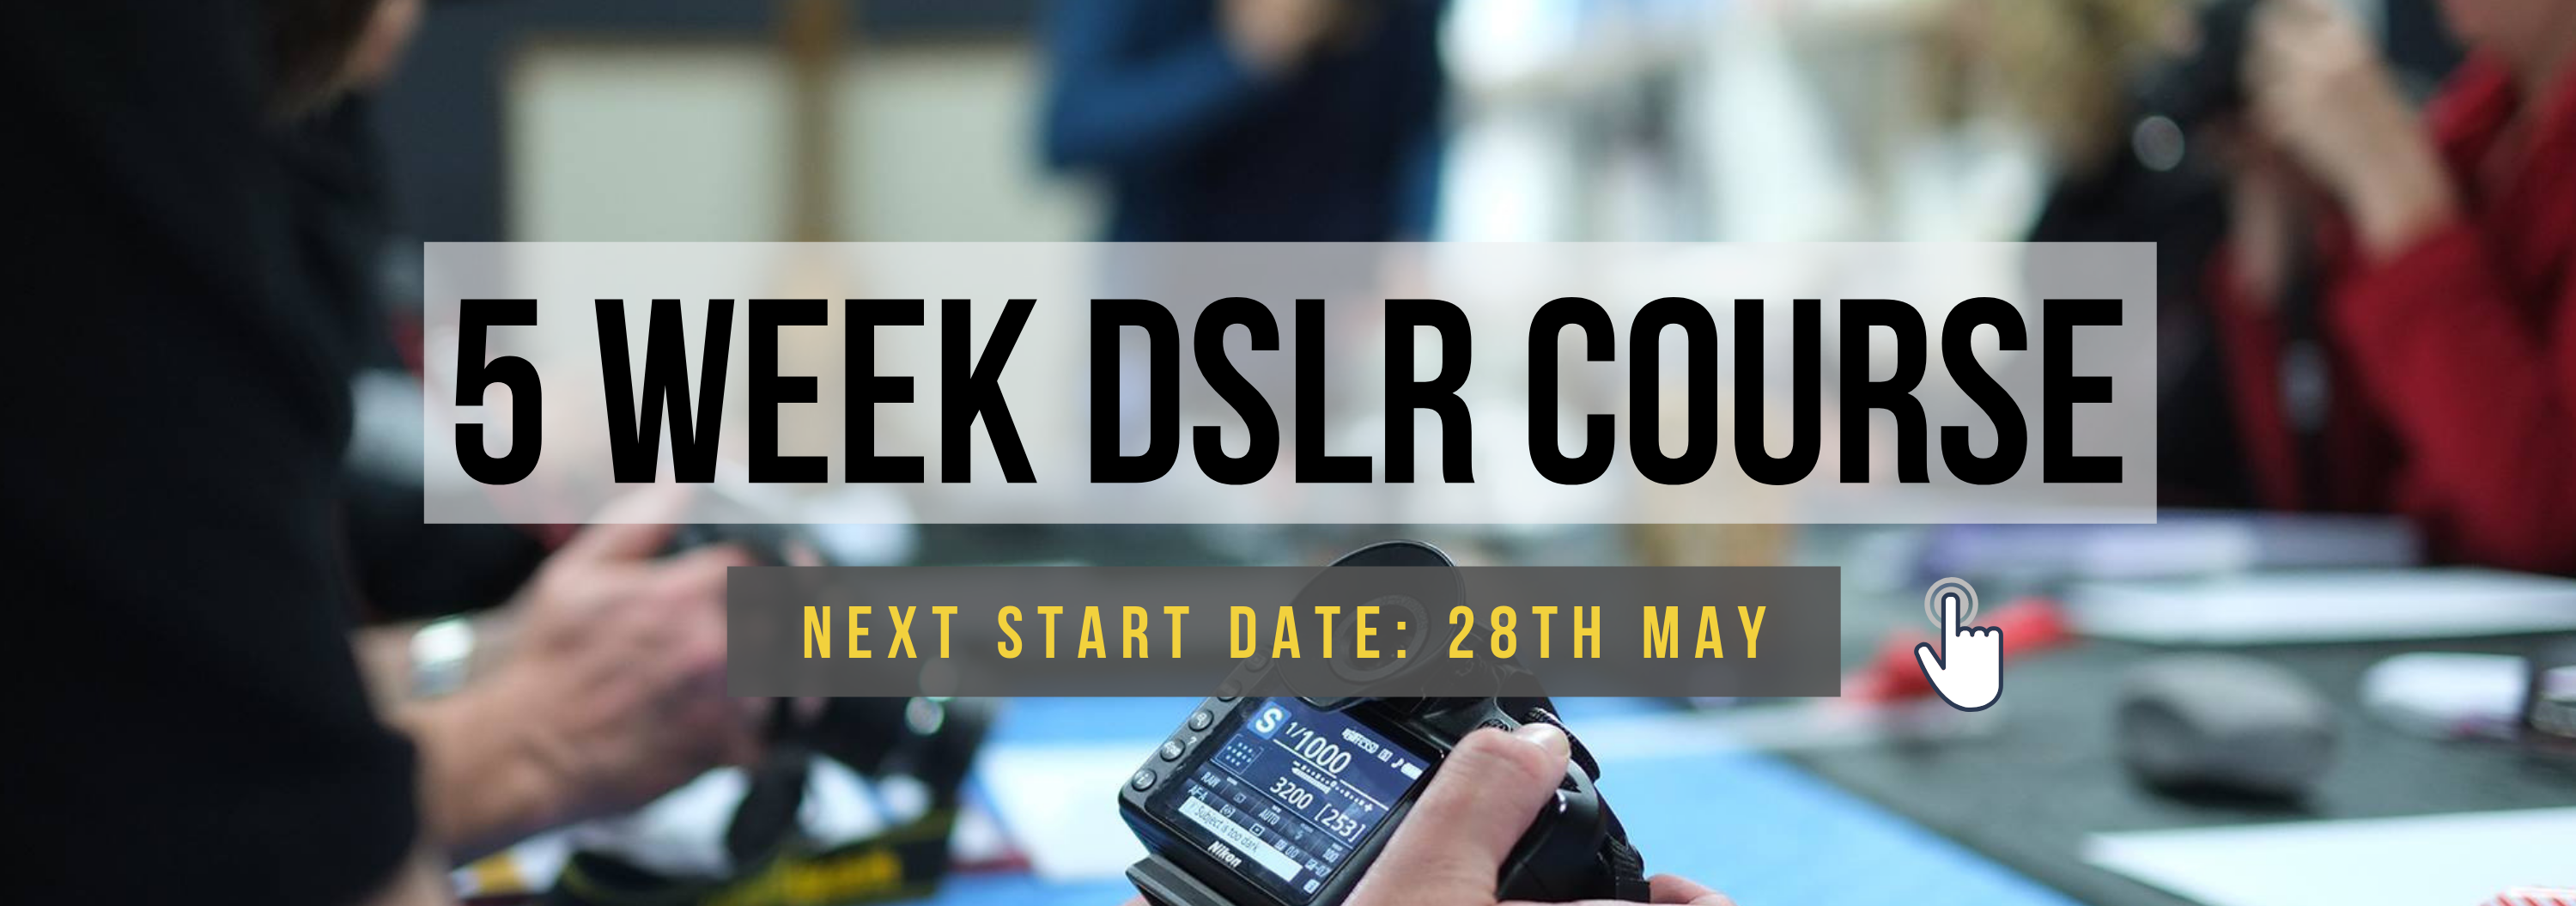 5 Week DSLR Course 28th May